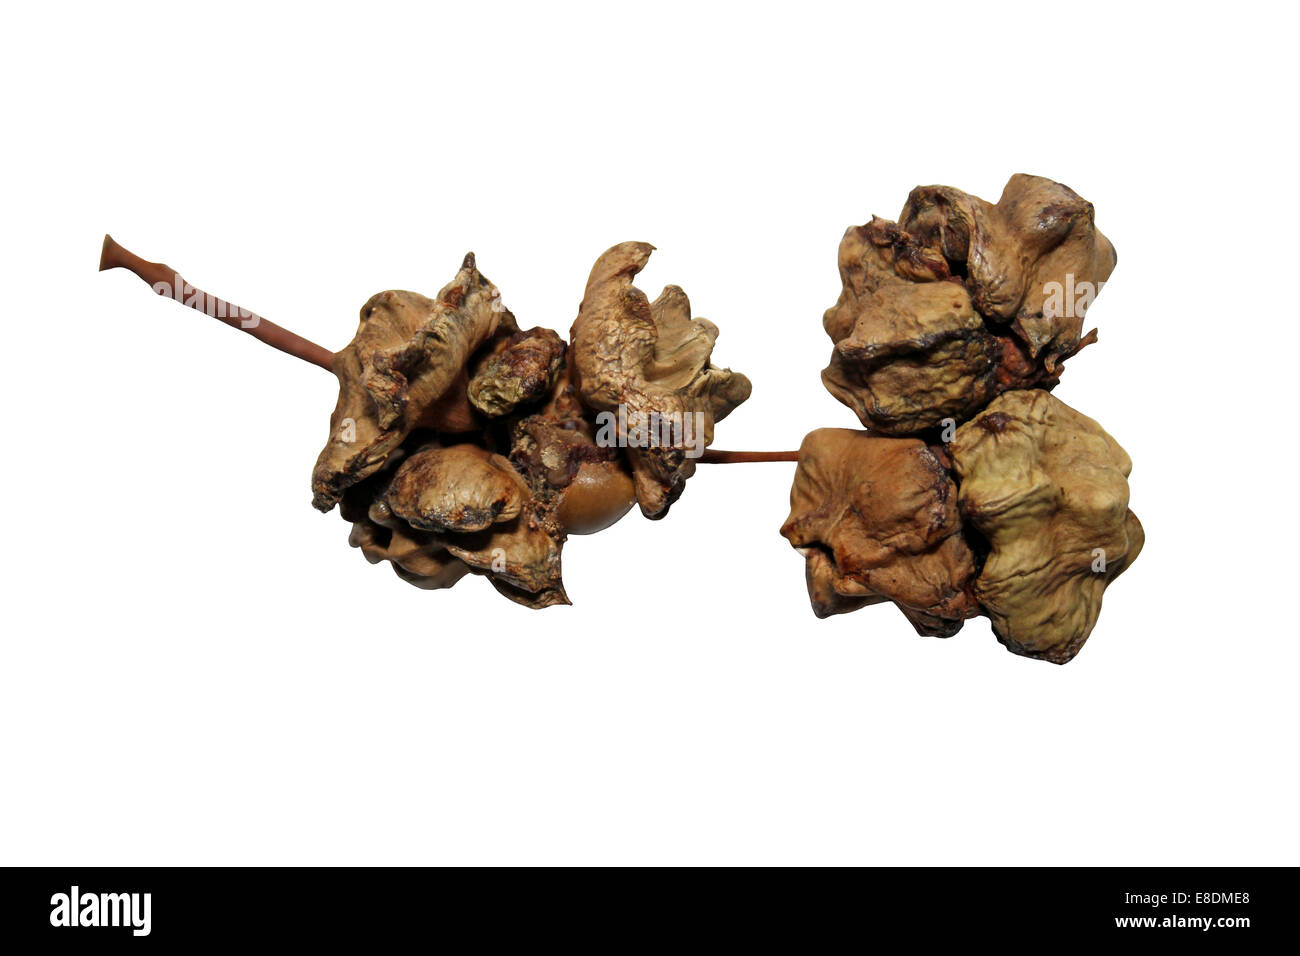 Oak Knopper Gall Caused By The Gall Wasp Andricus quercuscalicis - Stock Image